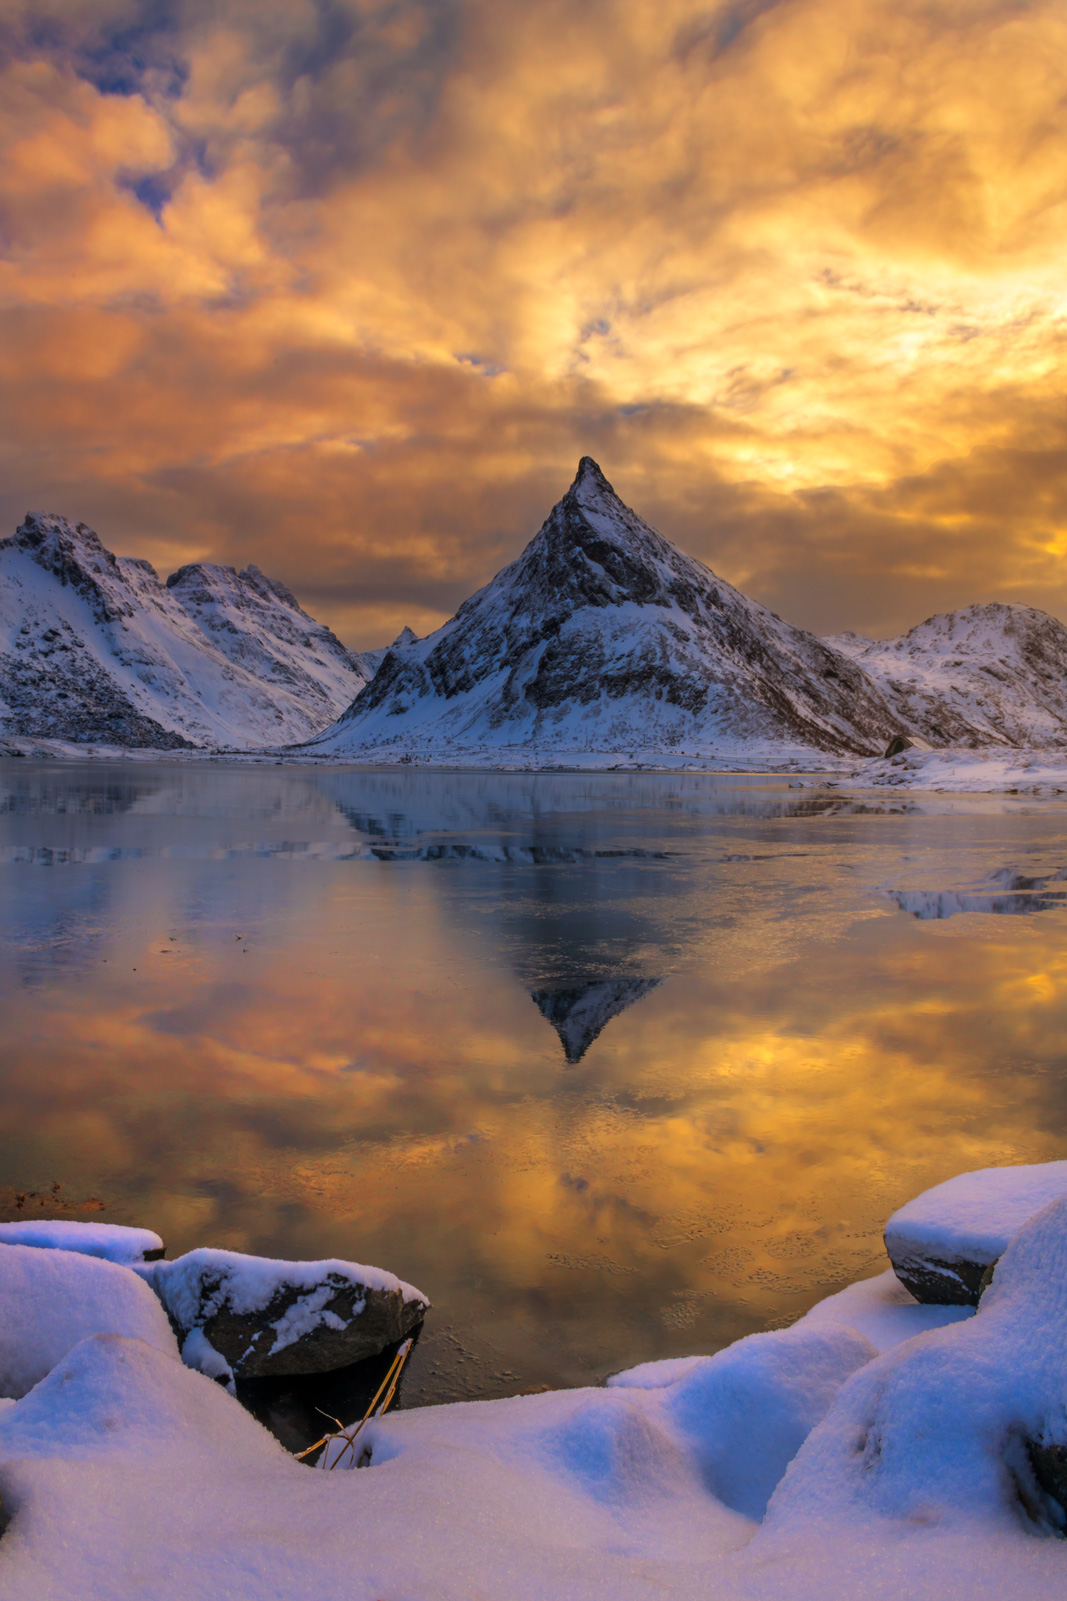 Norway, Lofoten, Fredvang, Volundstind, Winter, Reflection, Lake